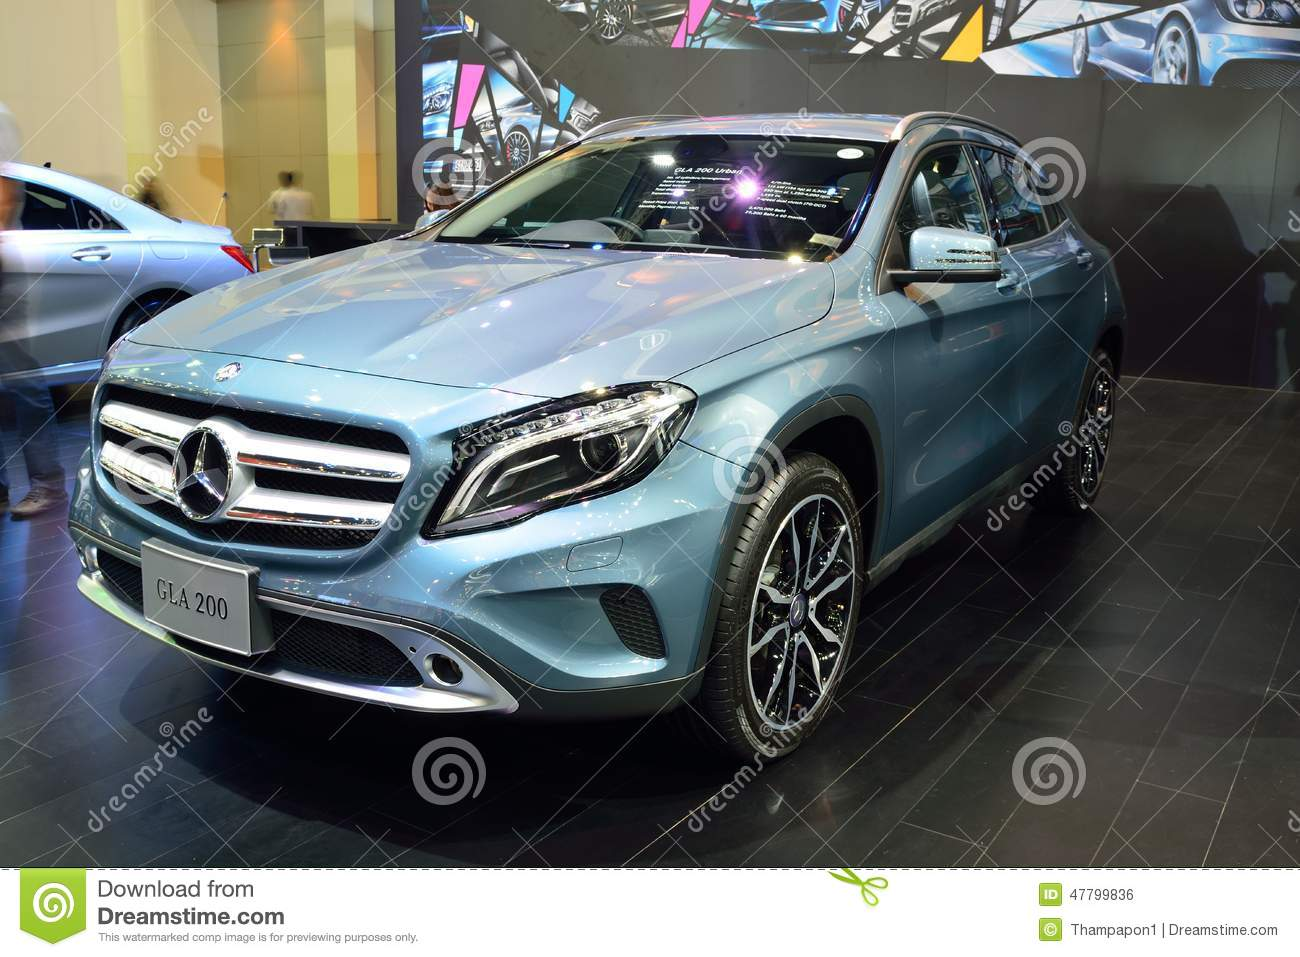 nonthaburi december 1 mercedes benz gla 200 car display. Black Bedroom Furniture Sets. Home Design Ideas